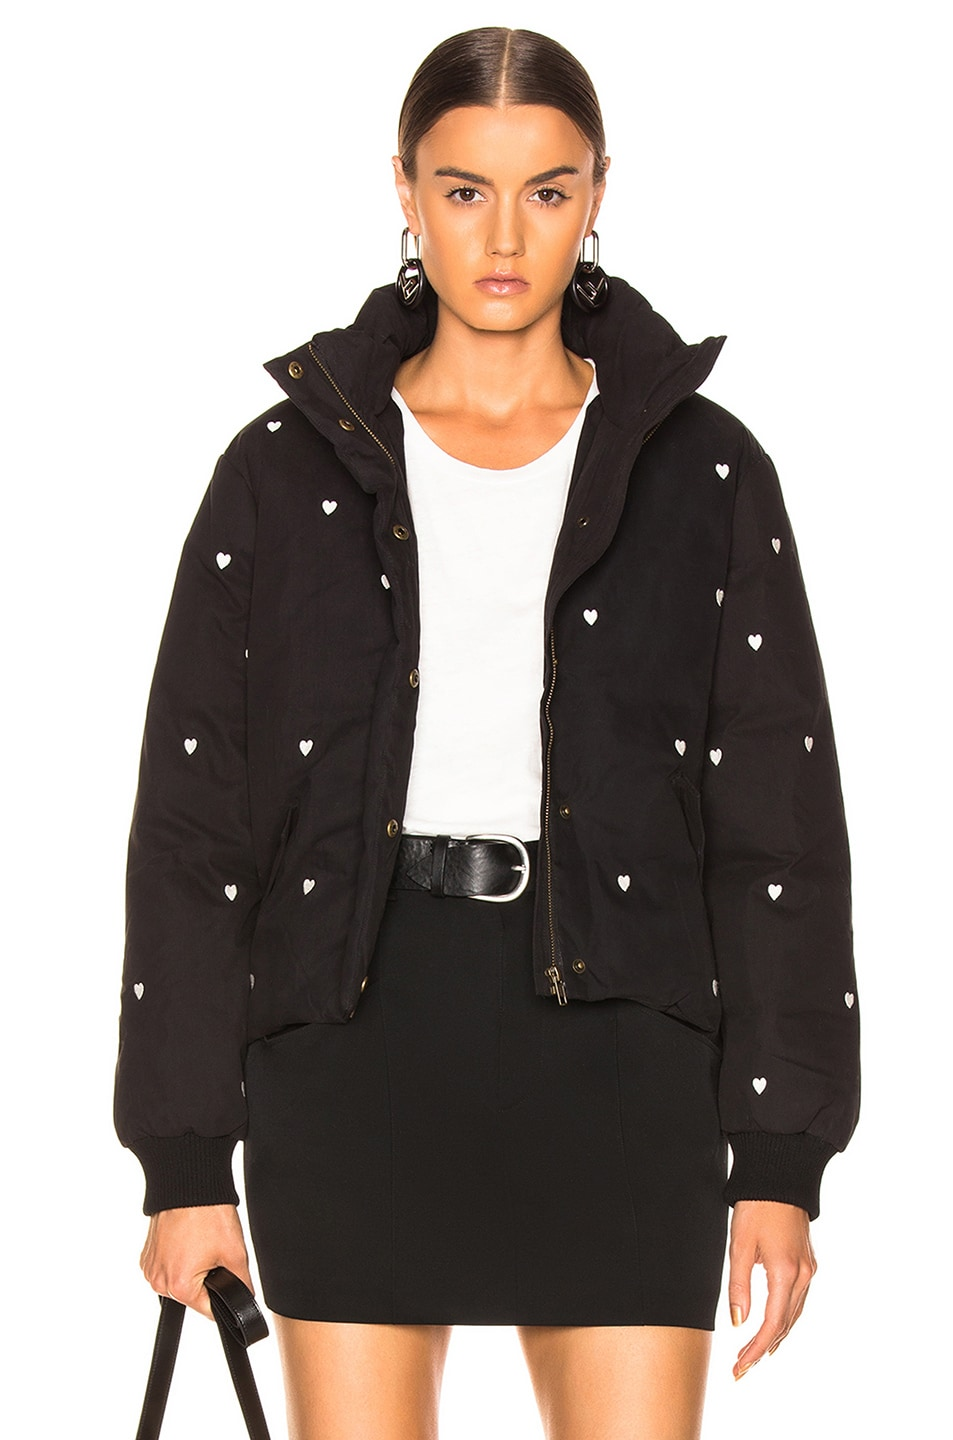 8a383a446af11 The Great Puffer Coat in Black With White Heart Embroidery | FWRD